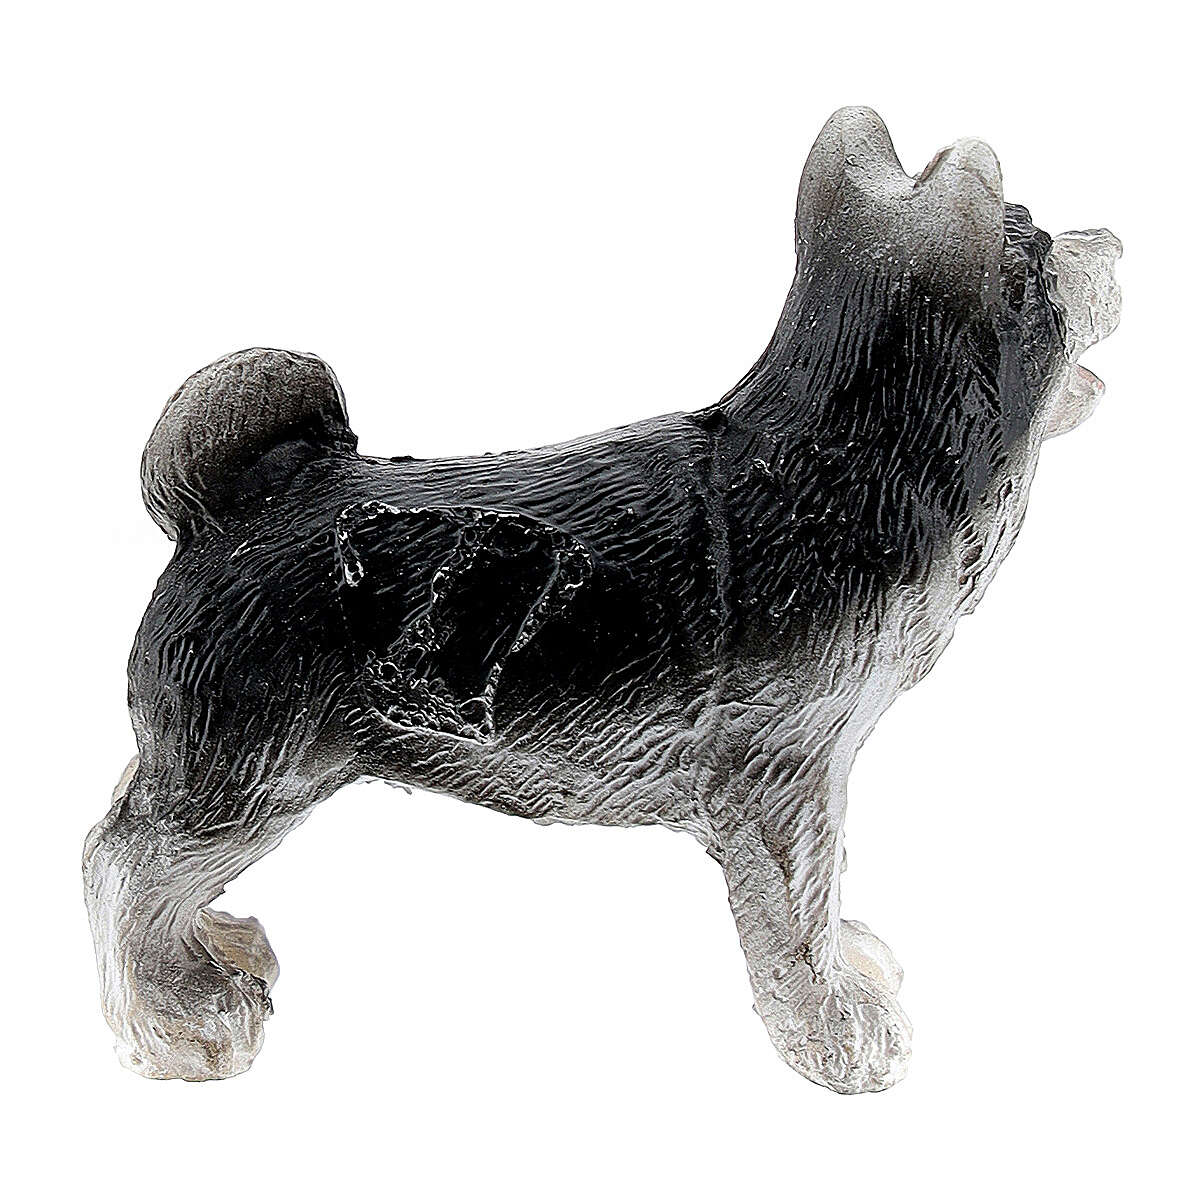 Resin dog 3 cm for Nativity Scene with 4-6 cm figurines 3